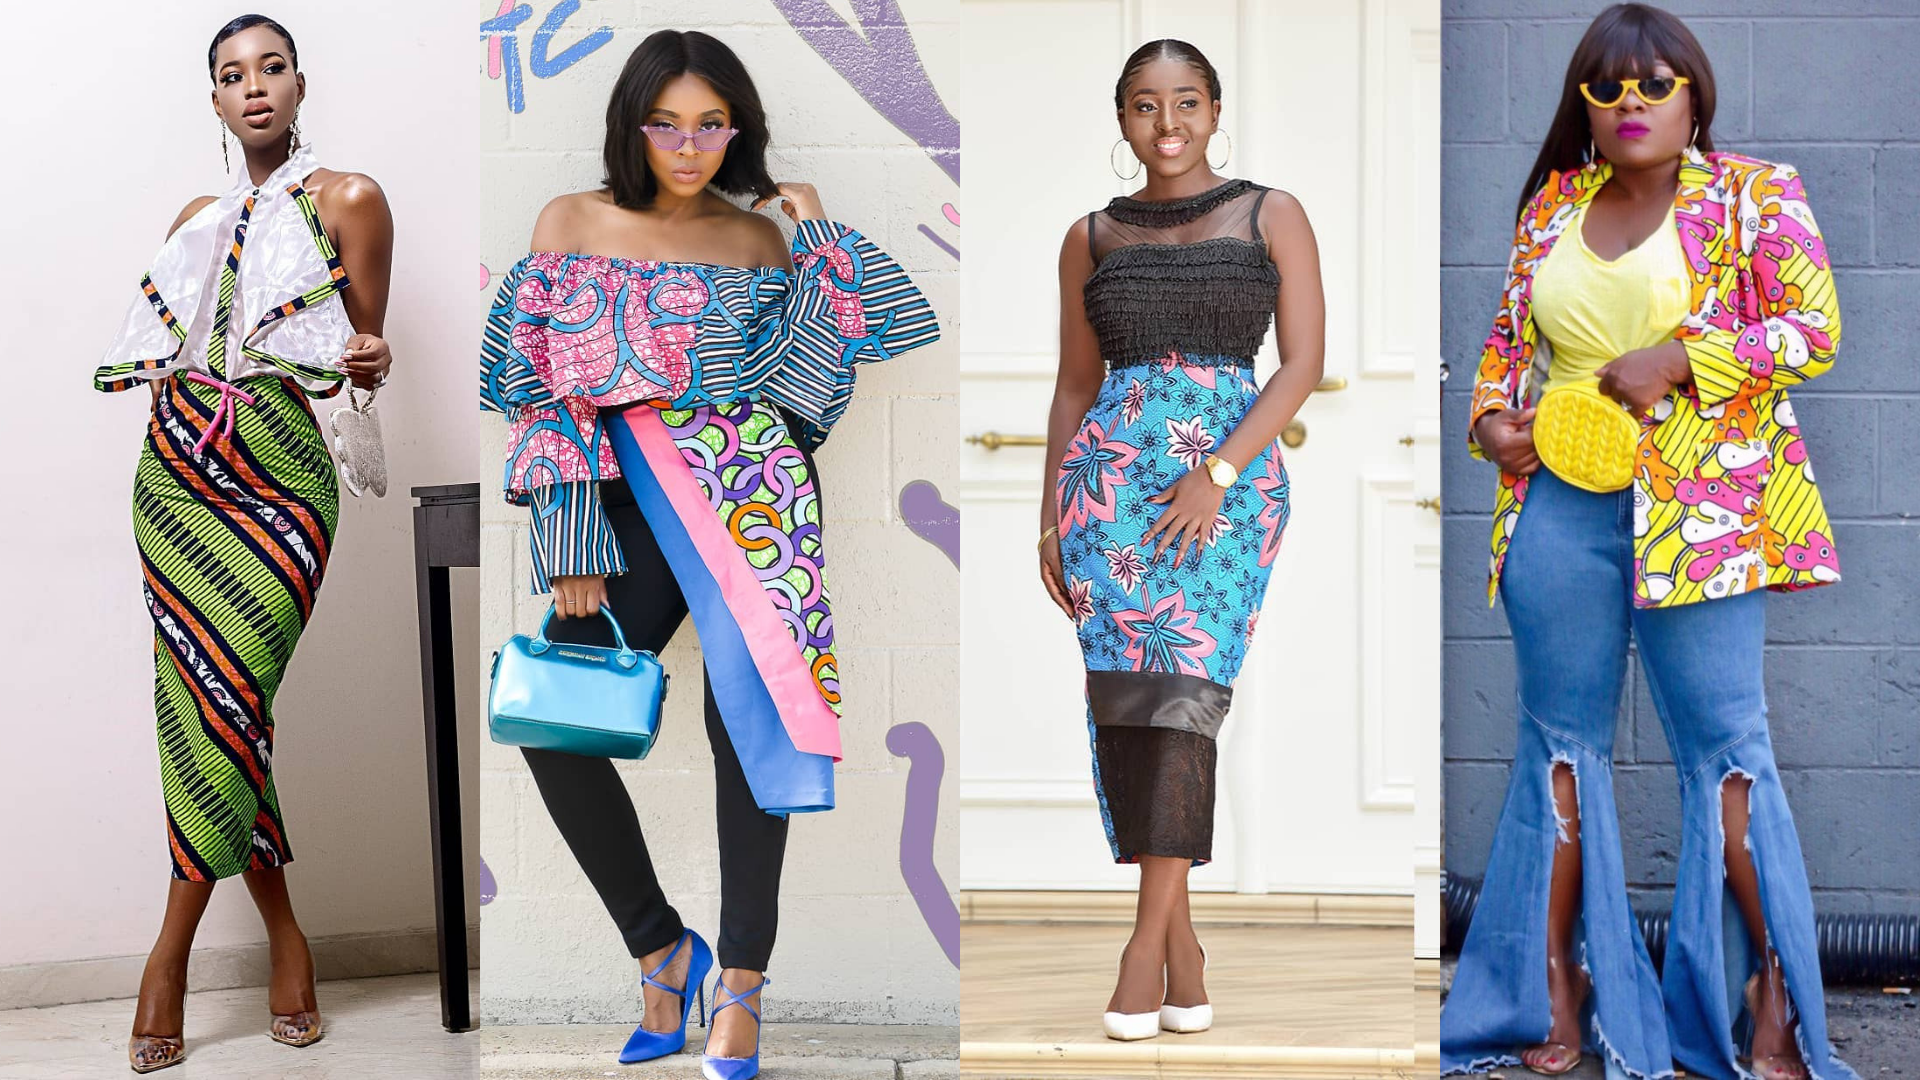 SGTC Clothing collabore avec Angel Obasi, LaNatria Ellis, Nana Ama et Funmi Ford